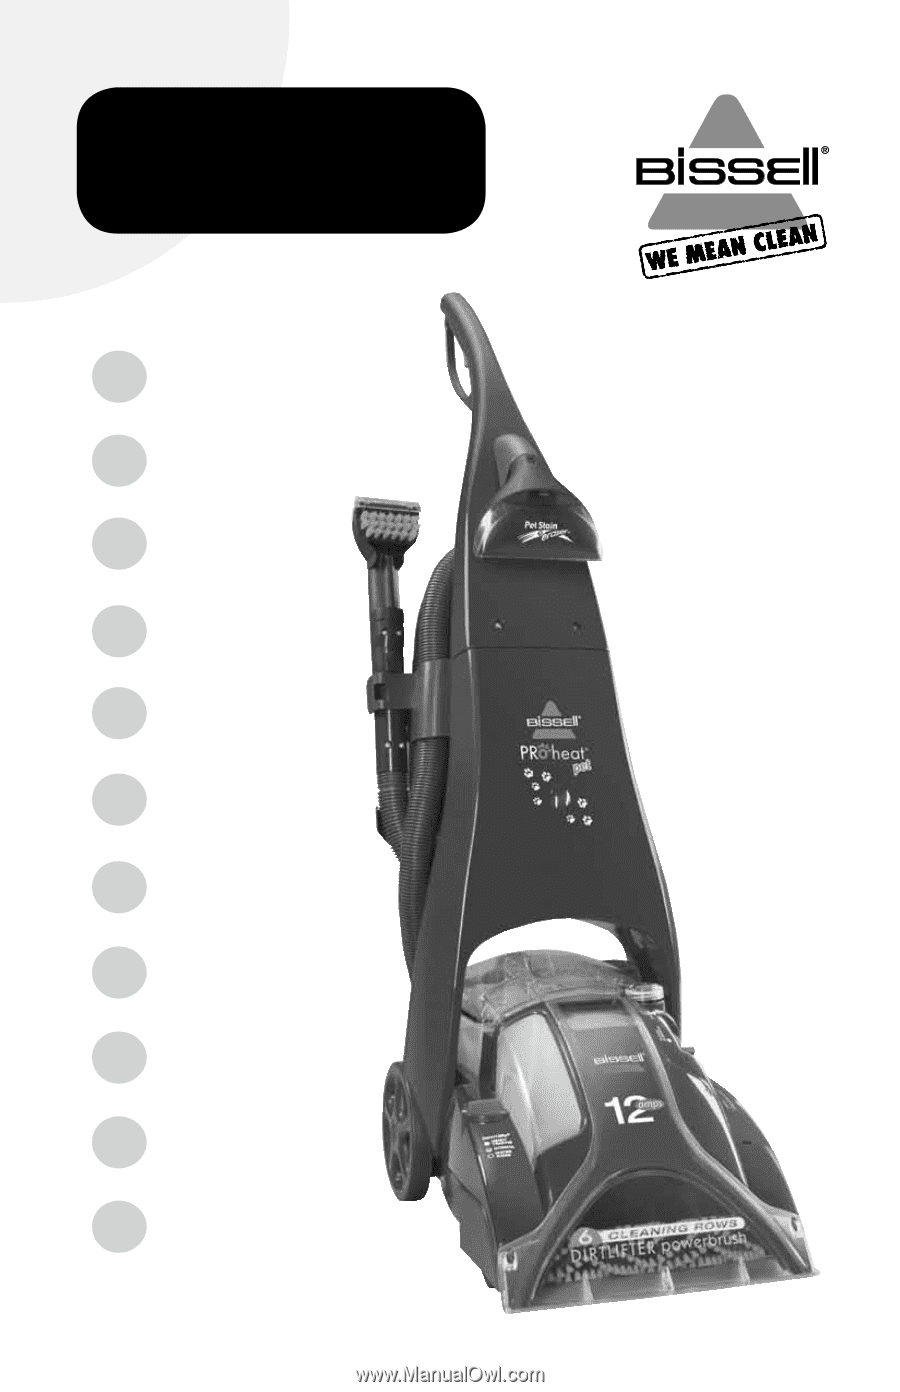 Bissell Proheat Pet Upright Carpet Cleaner 89108 Manual Guide